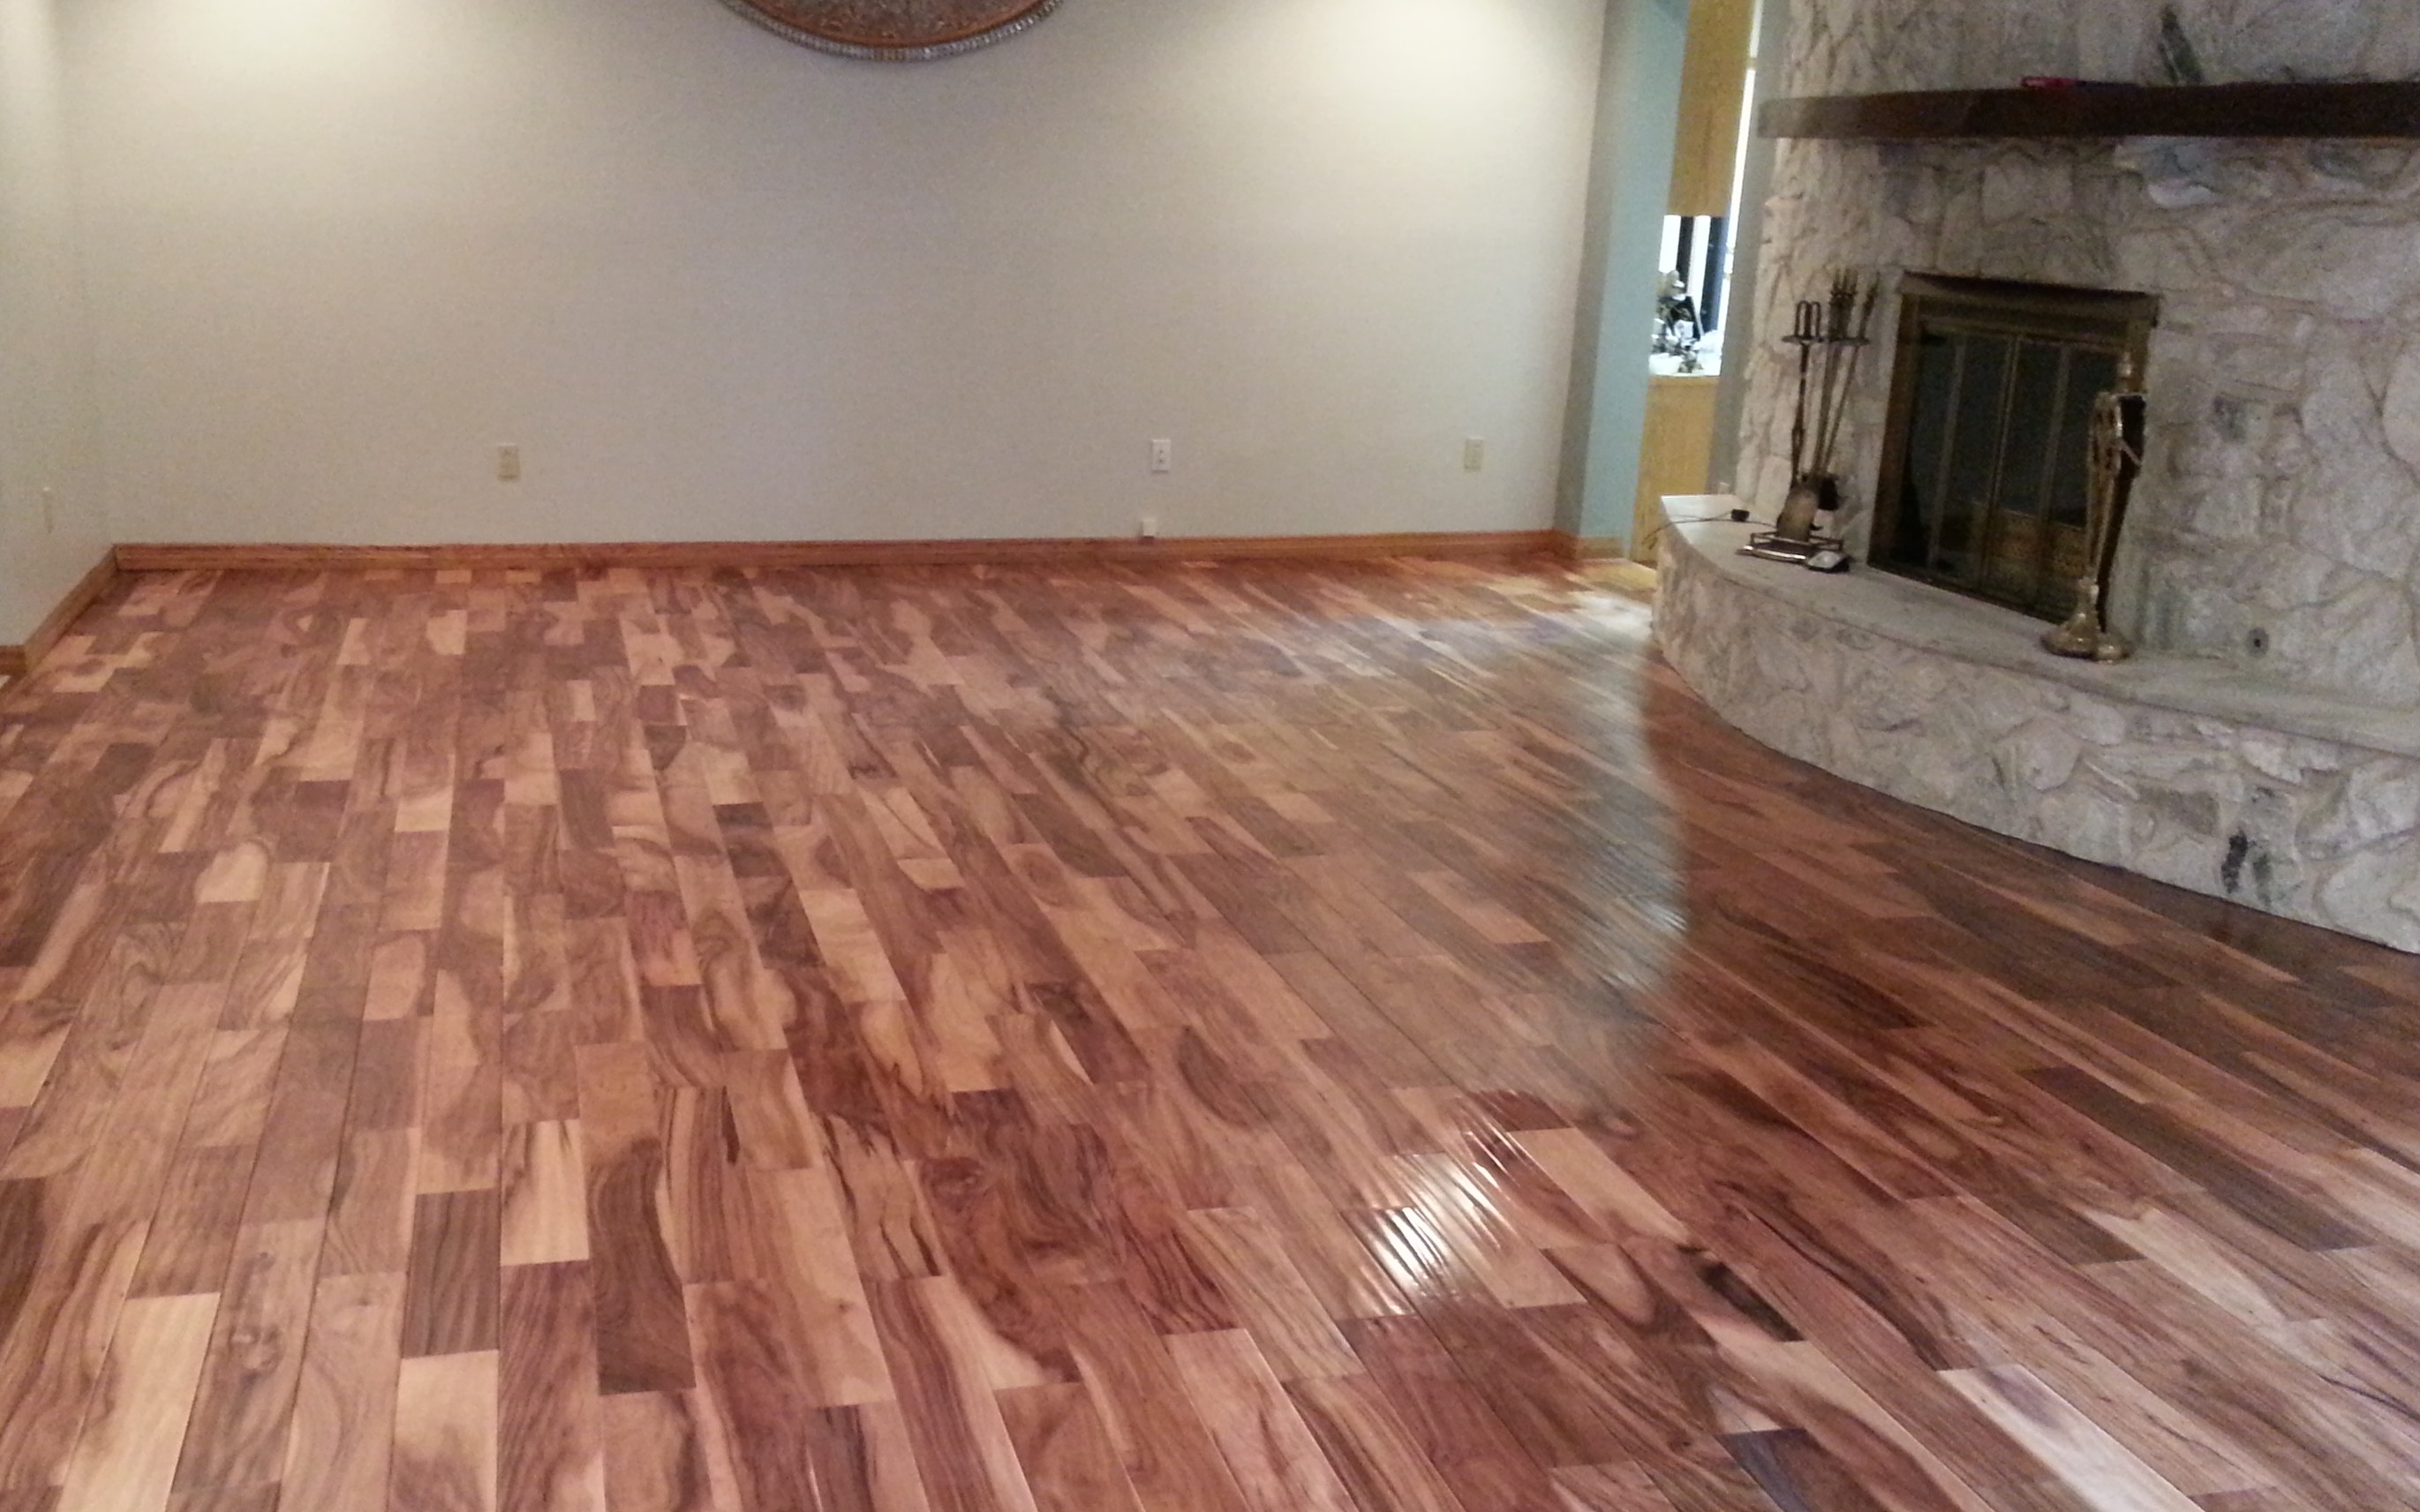 Services scs hardwood floors inc for Hardwood floors knoxville